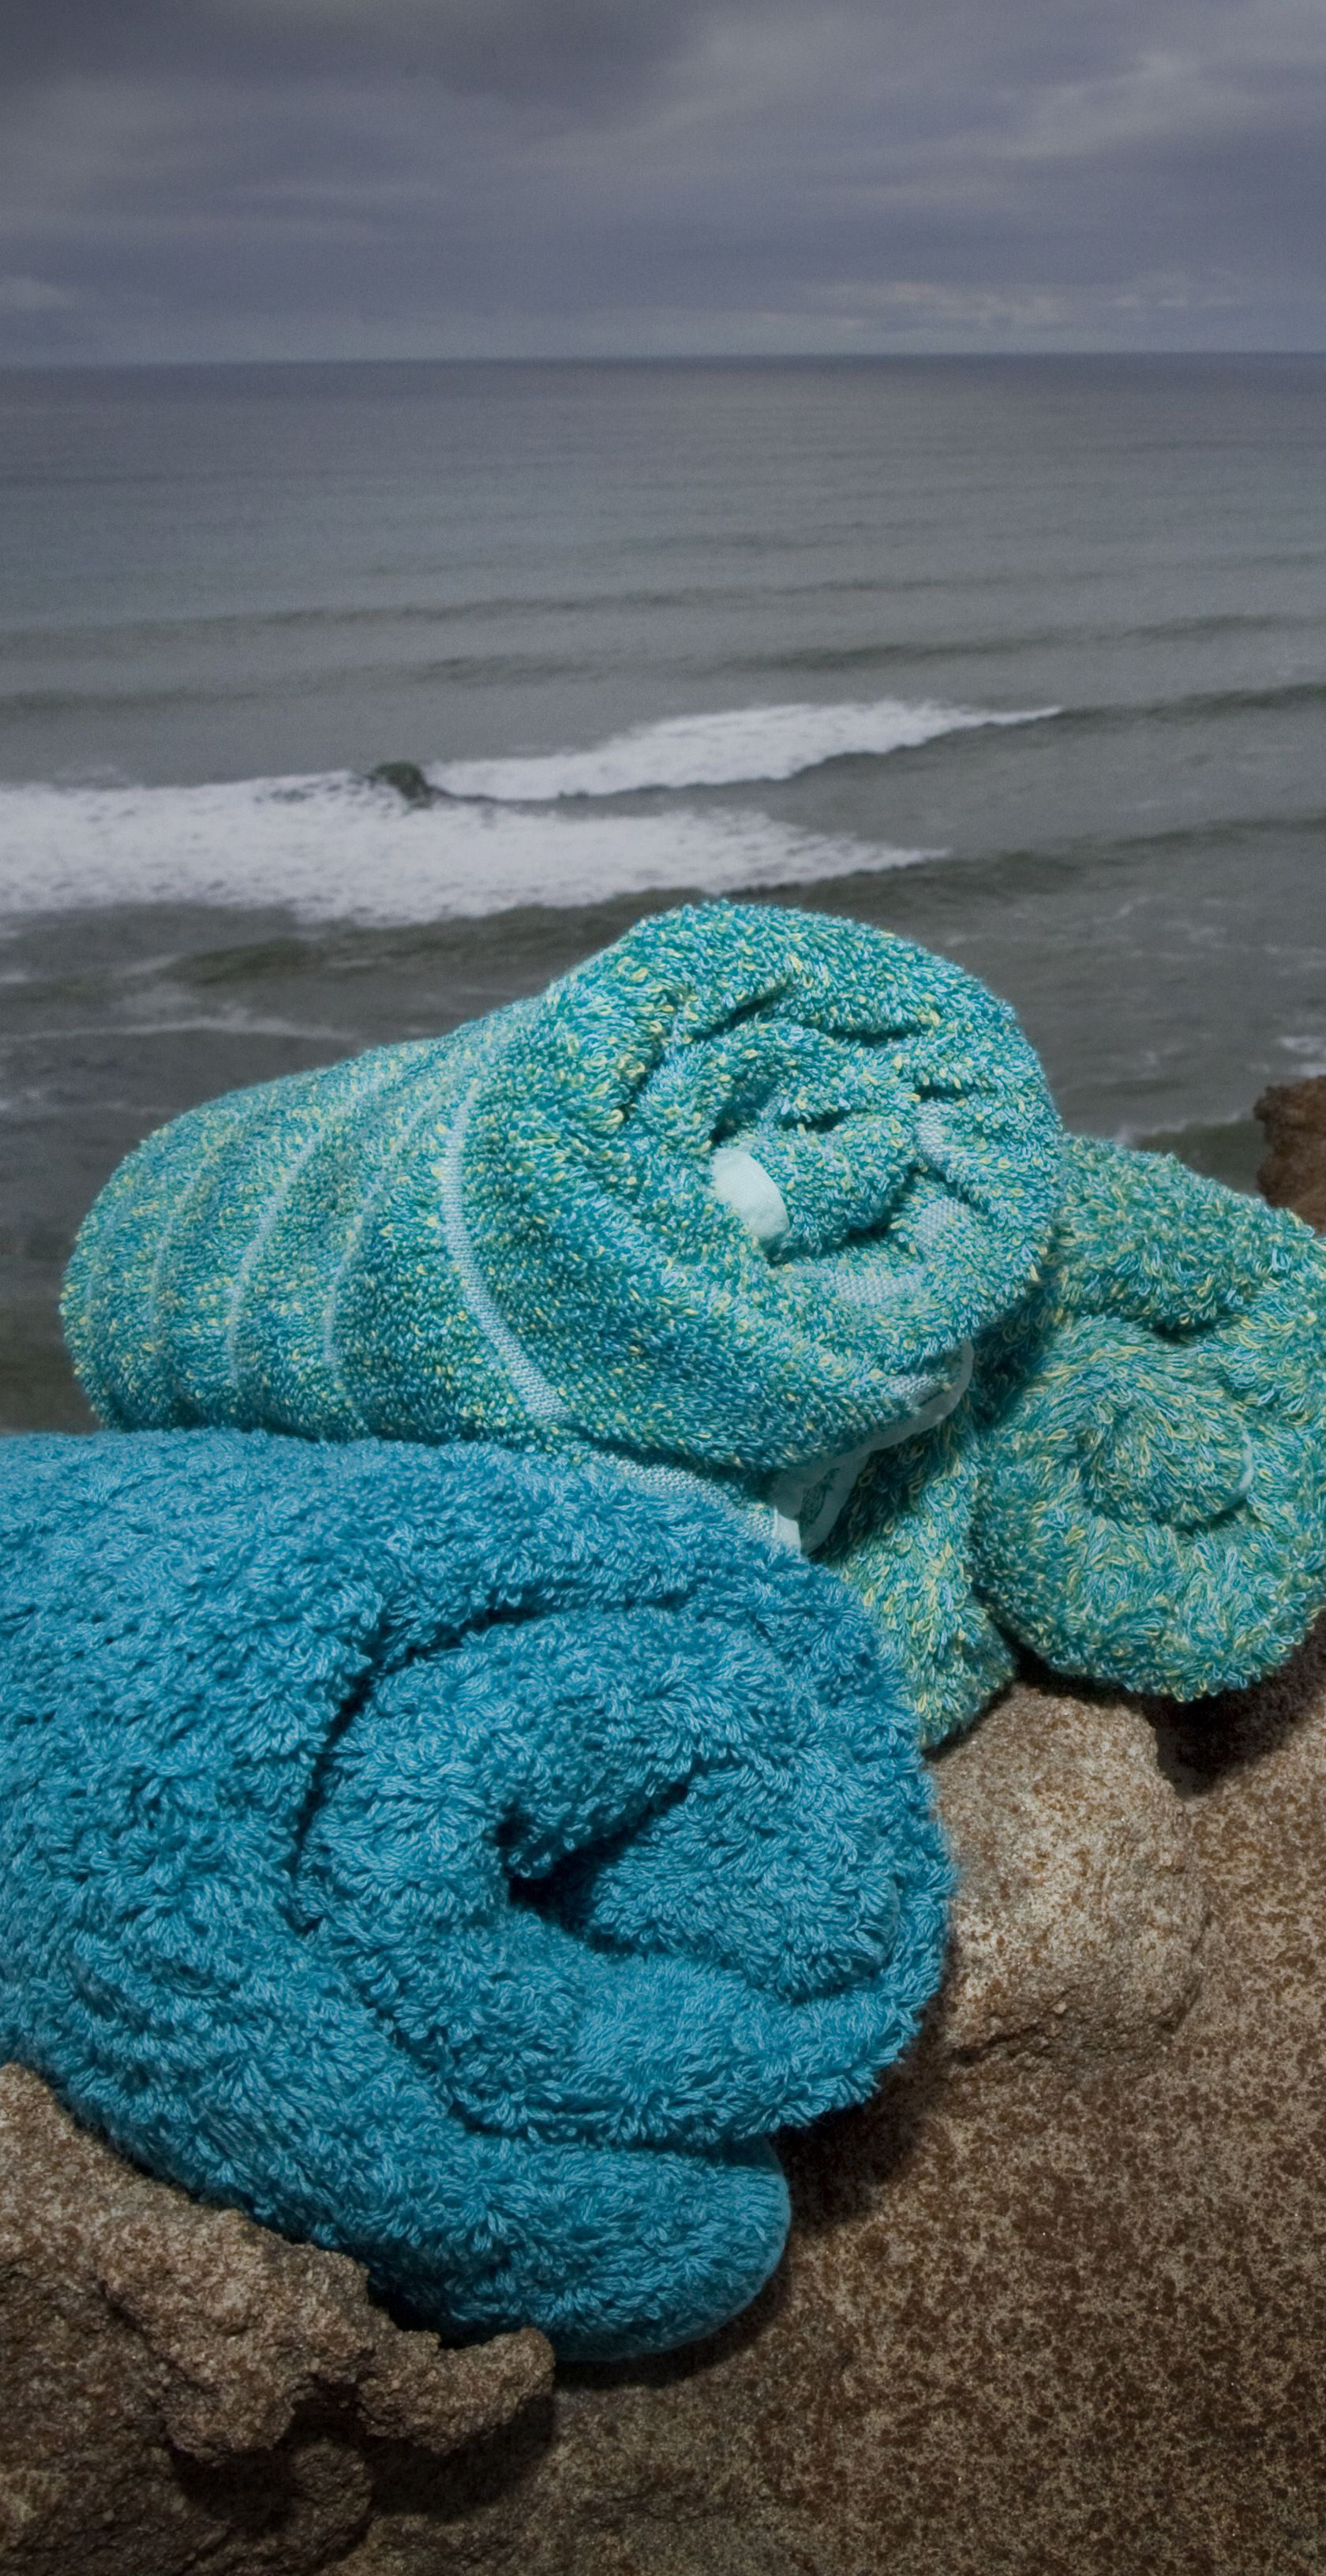 Softest Bath Towels Abyss Towels Are The Softest And Most Luxurious In The World